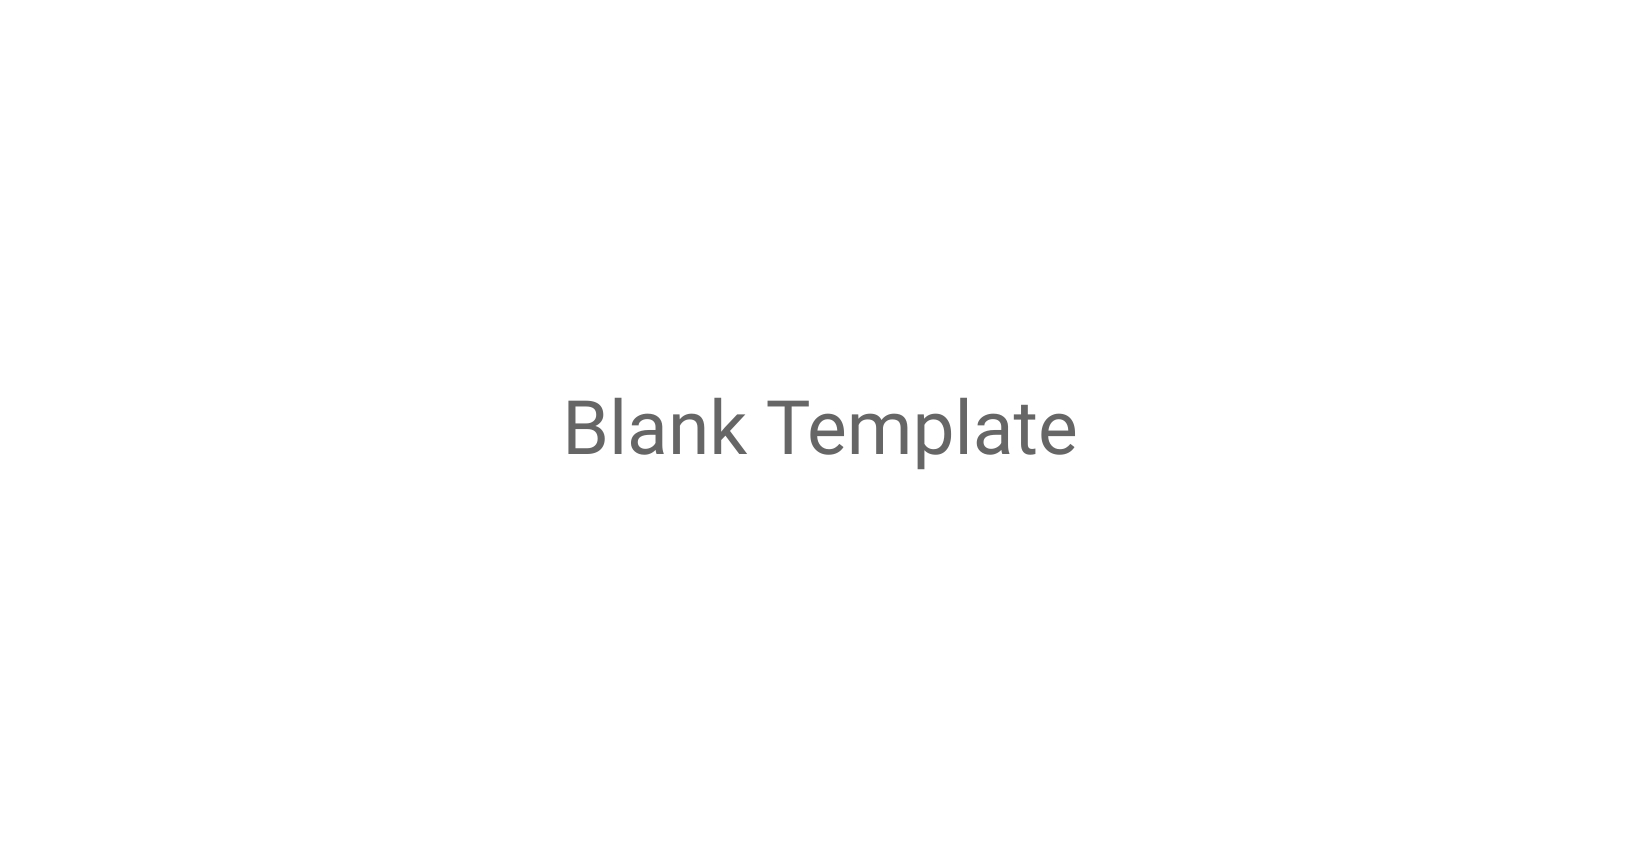 Blank Template Facebook Group Covers Template